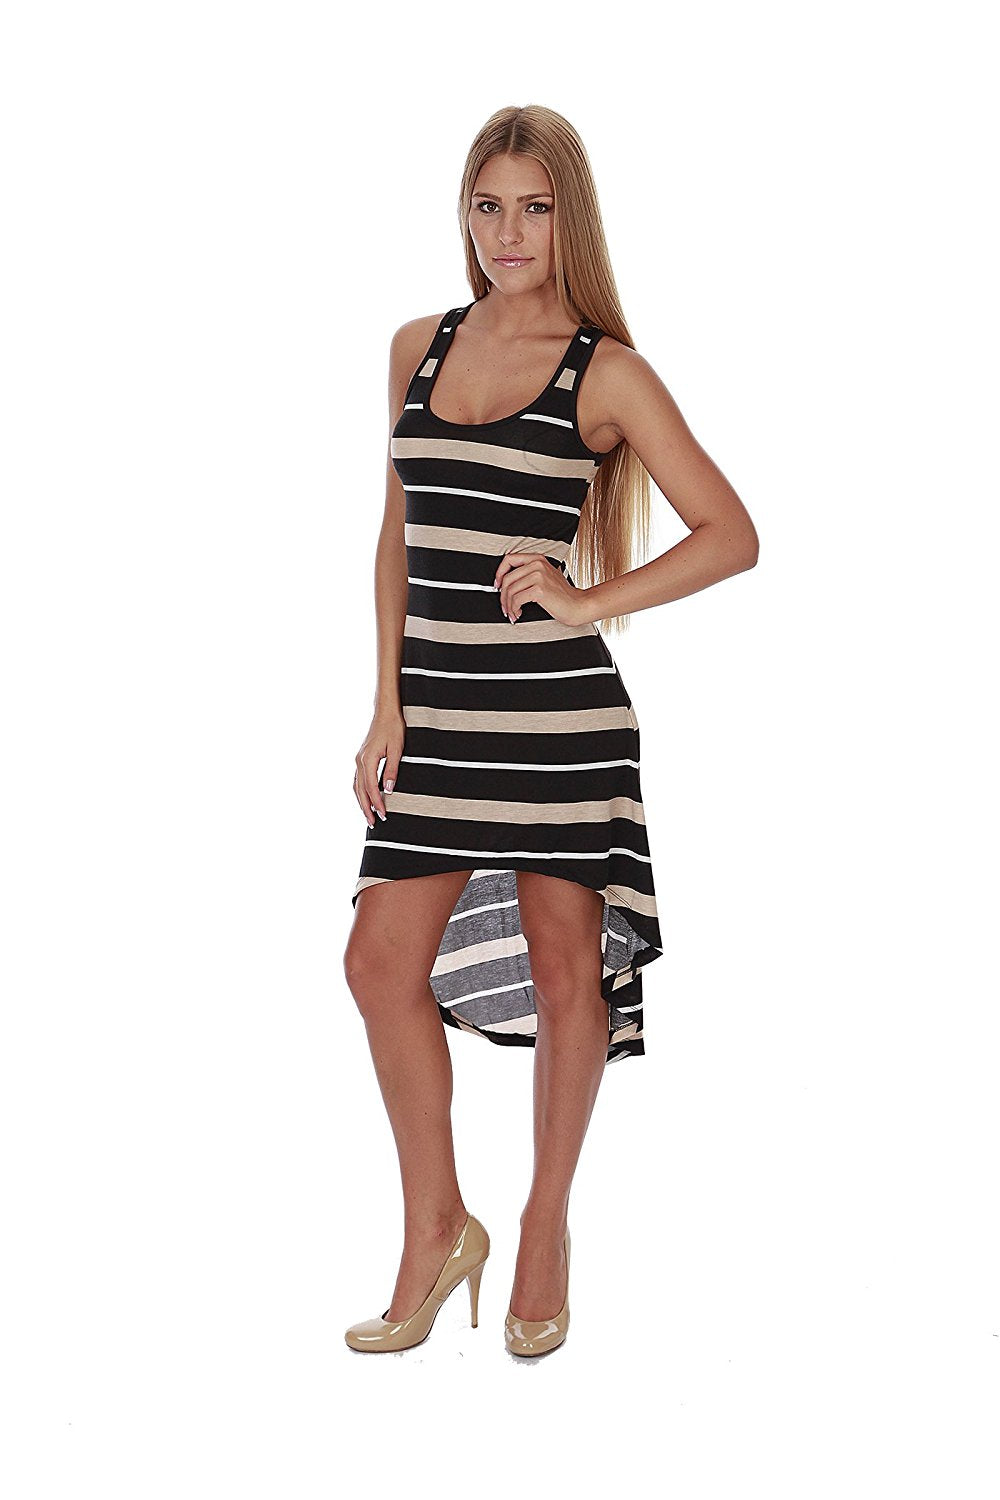 Hollywood Star Fashion Women's Striped Summer High And Low Midi Racerback Dress